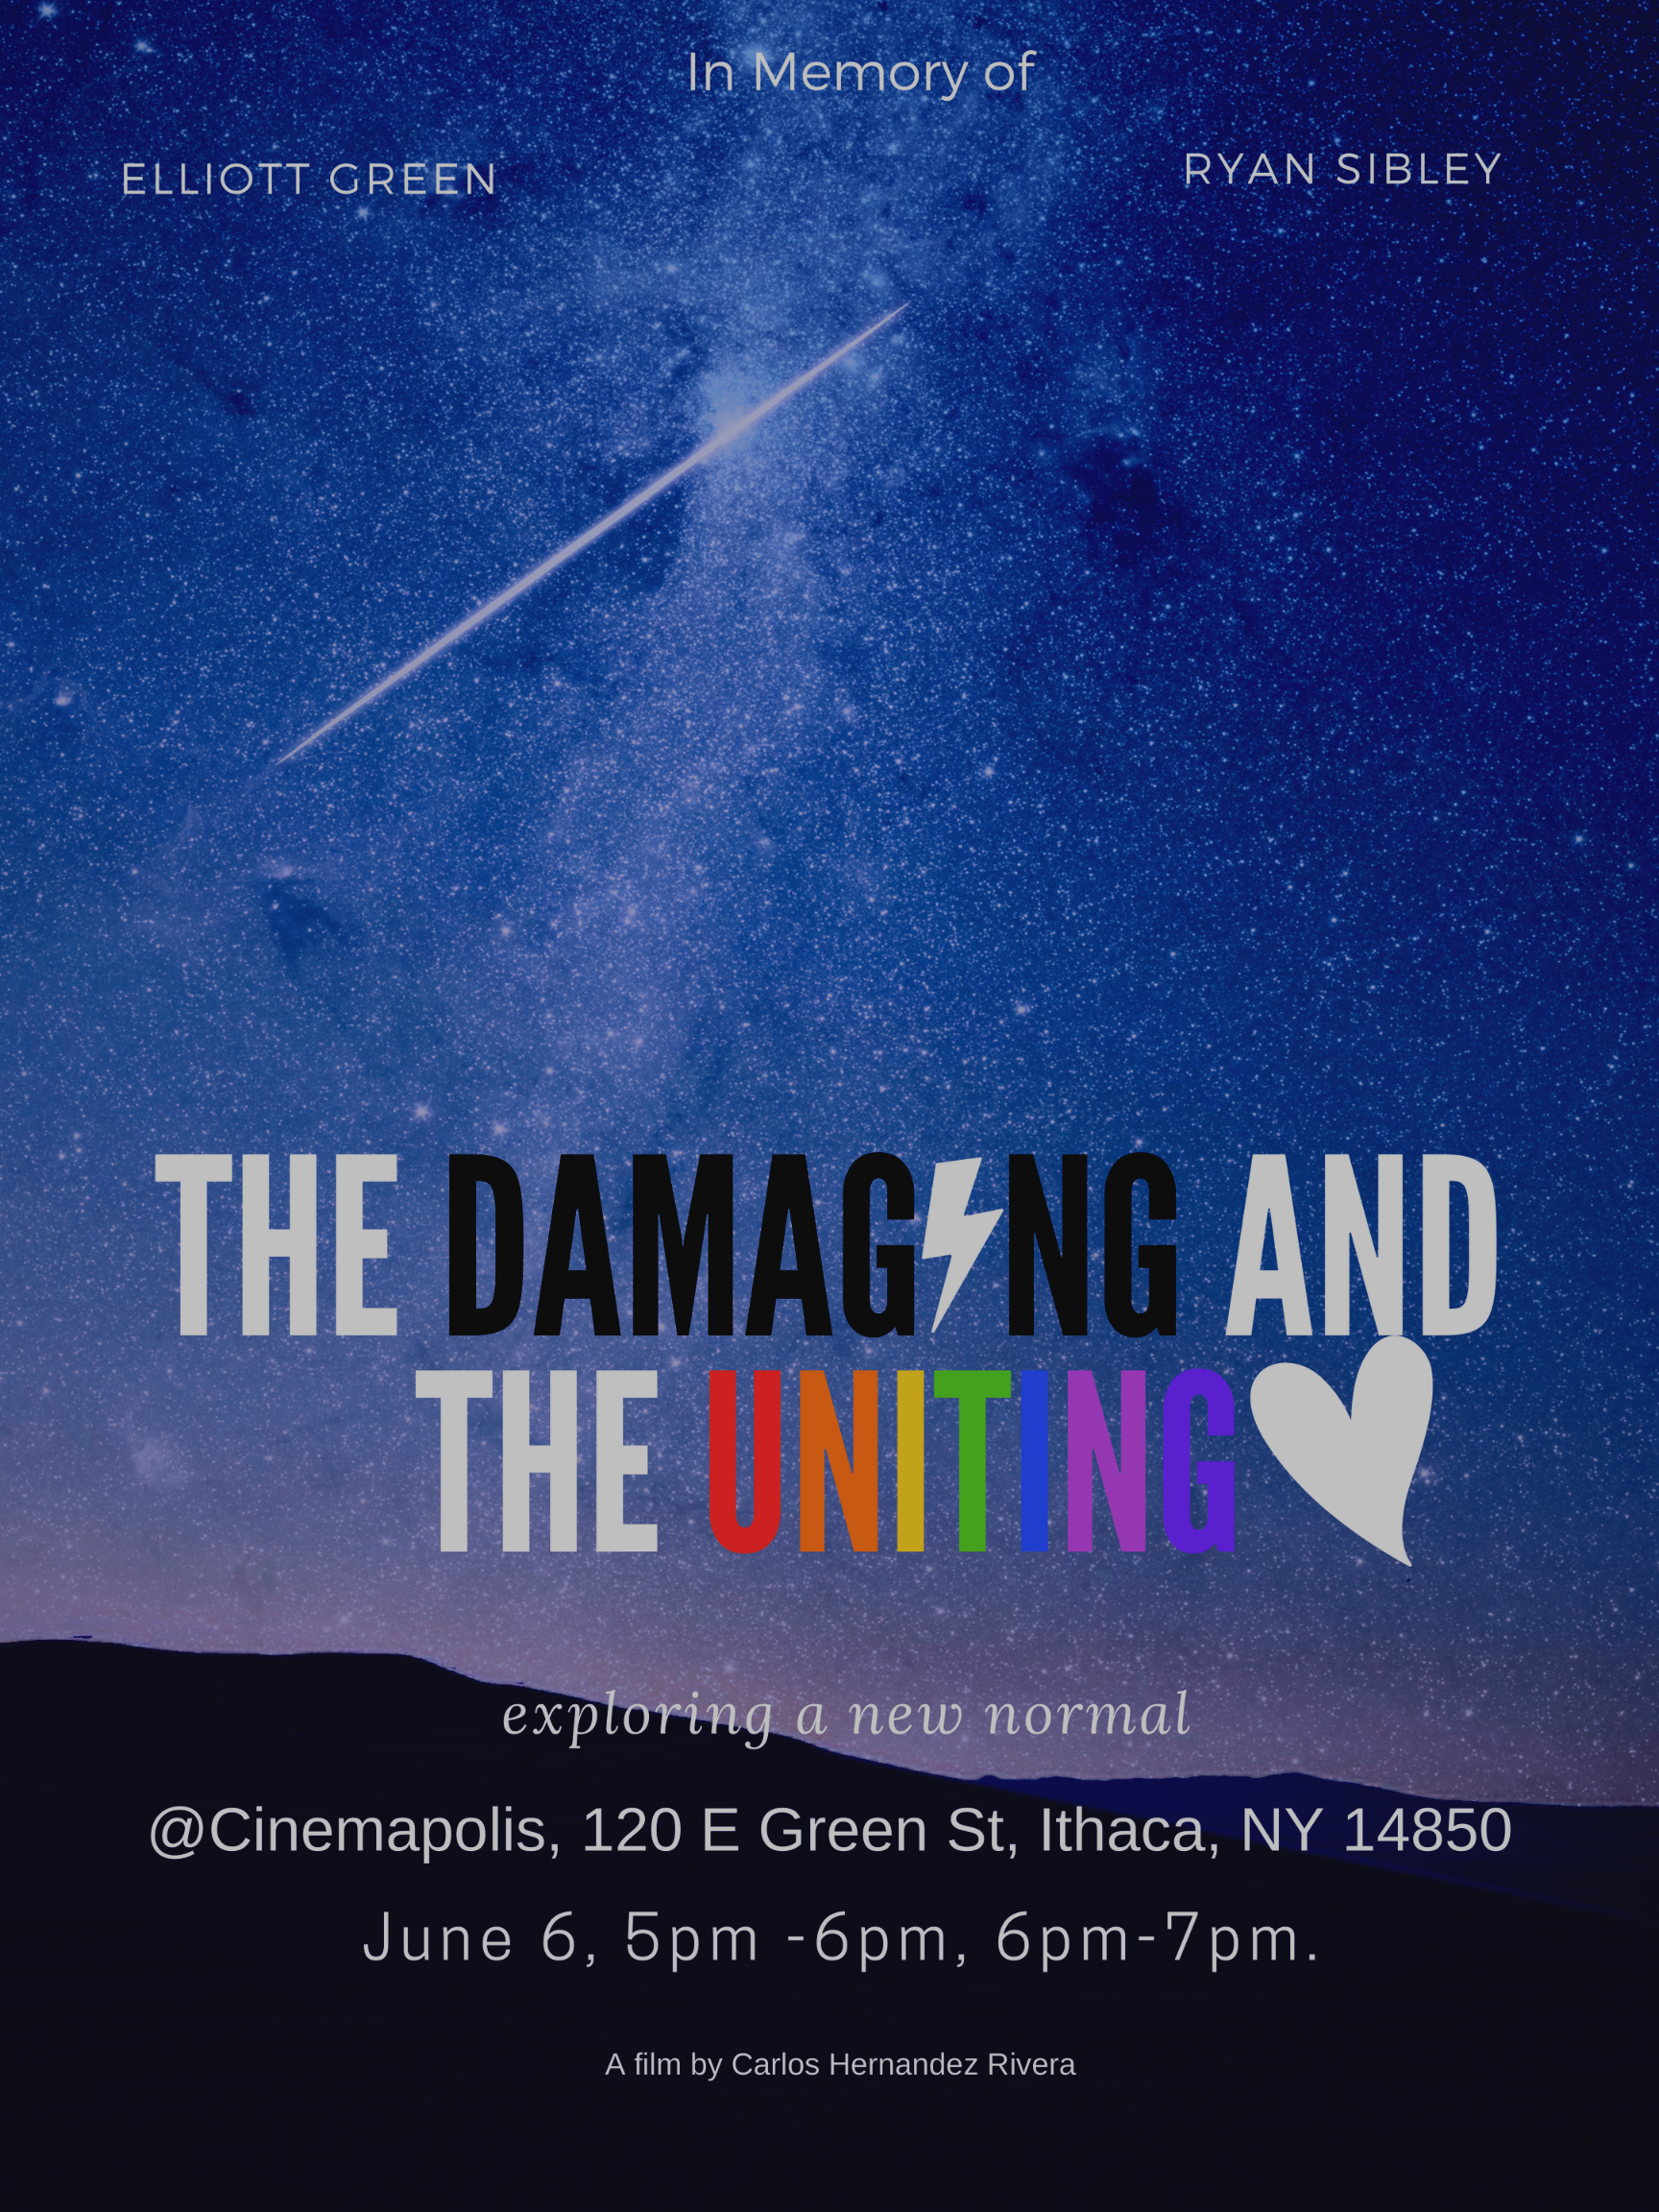 The Damaging and The Uniting